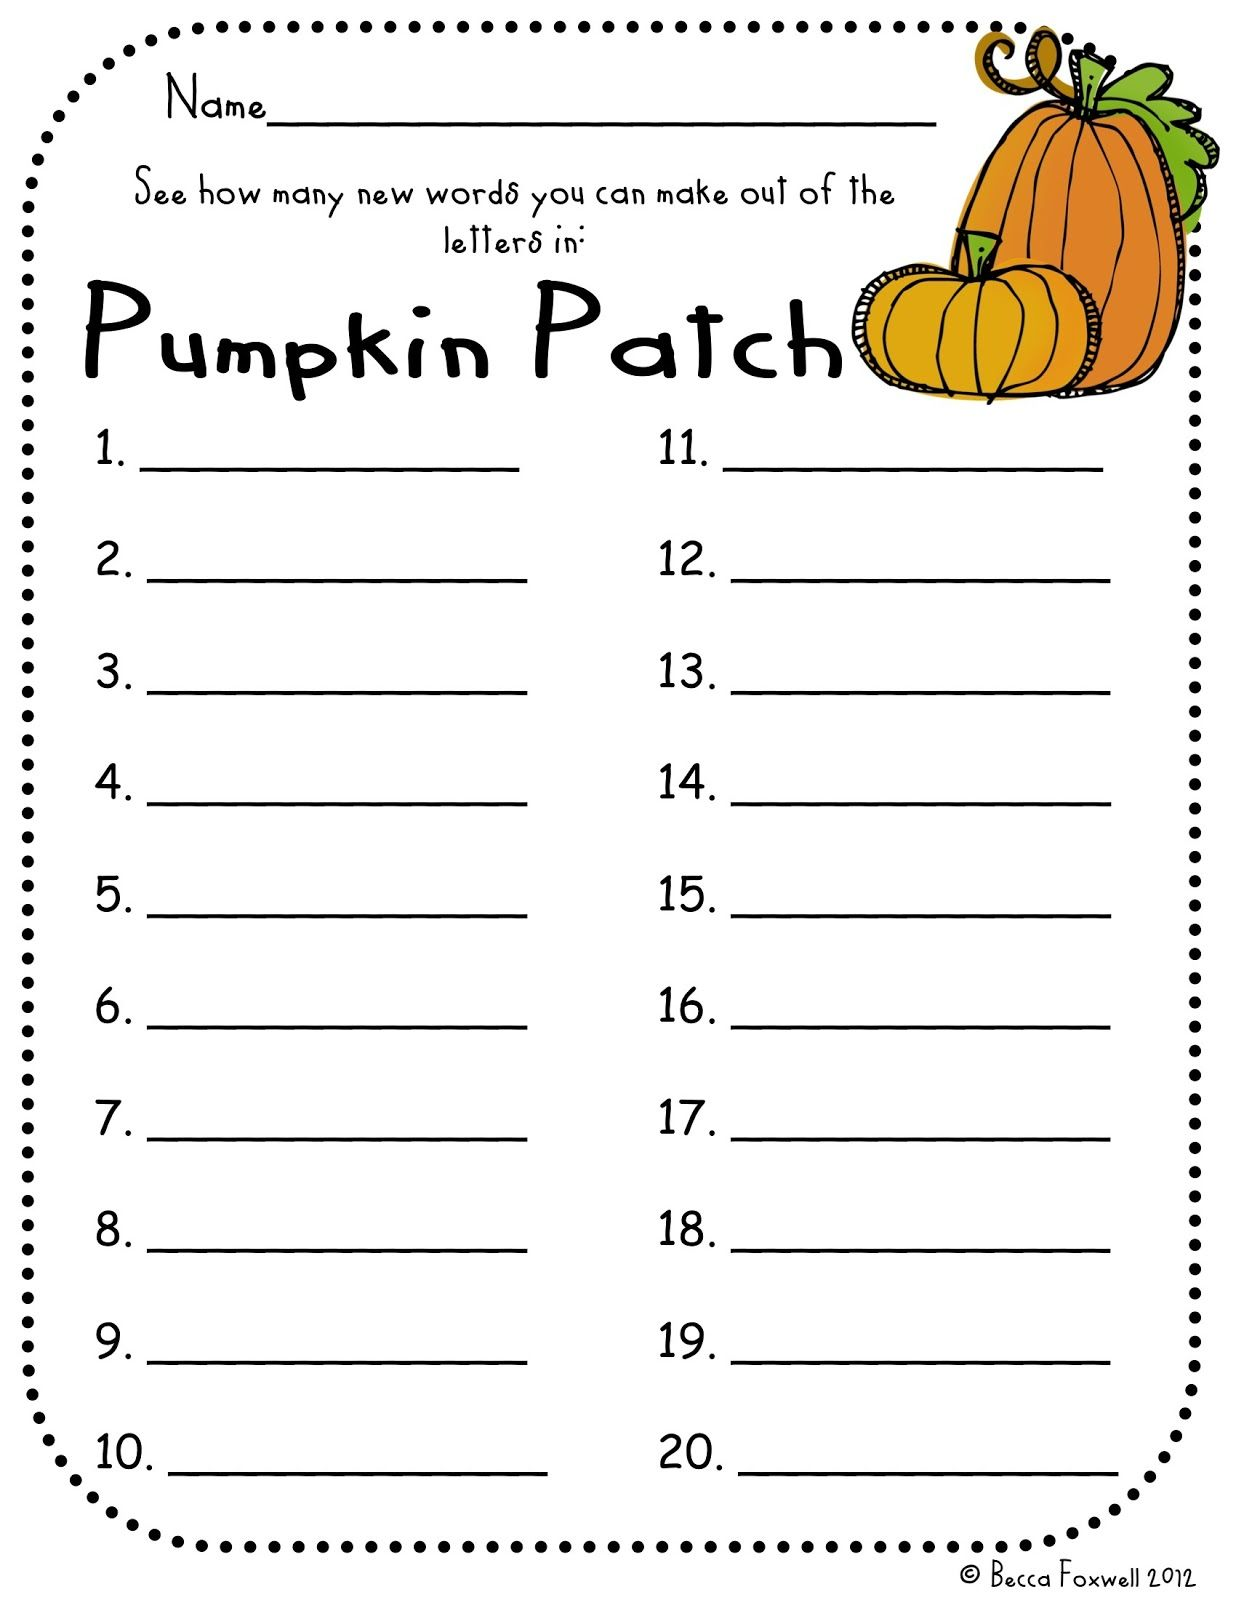 Pumpkin Patch Word Building Freebie